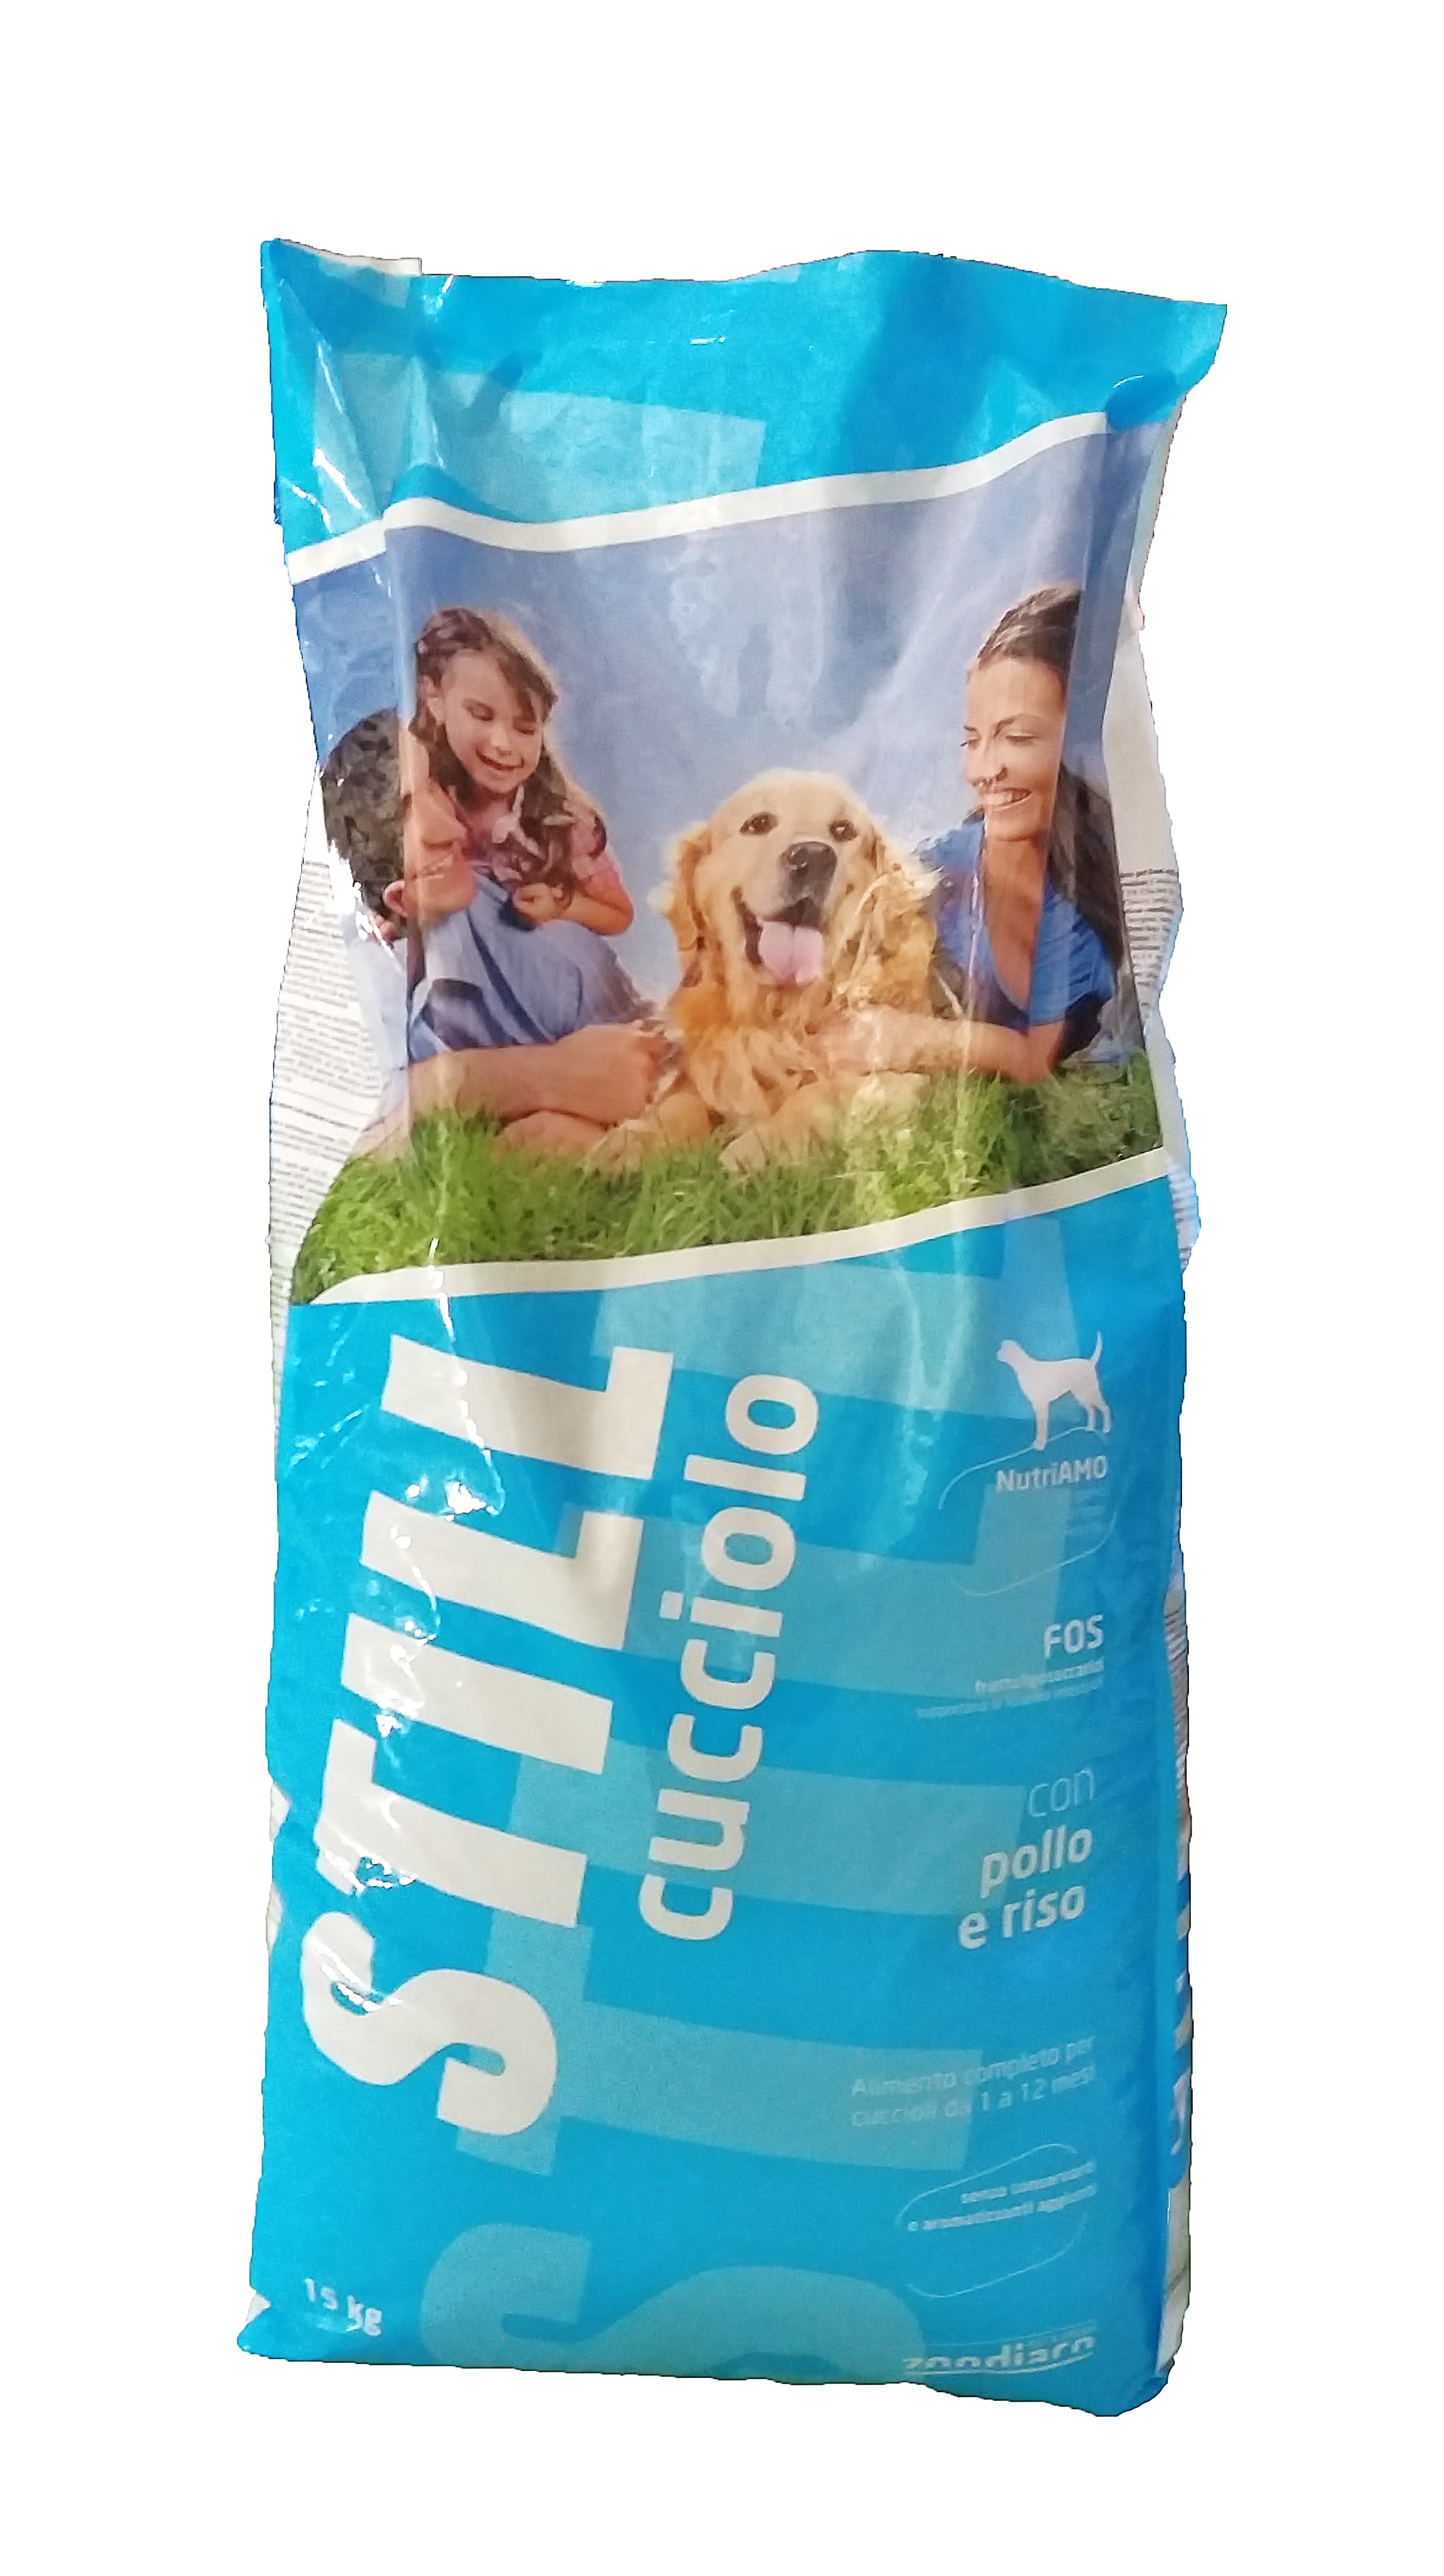 Still Dog Cucciolo (Puppy) 15 Kg, High Premium (Made in Italy)